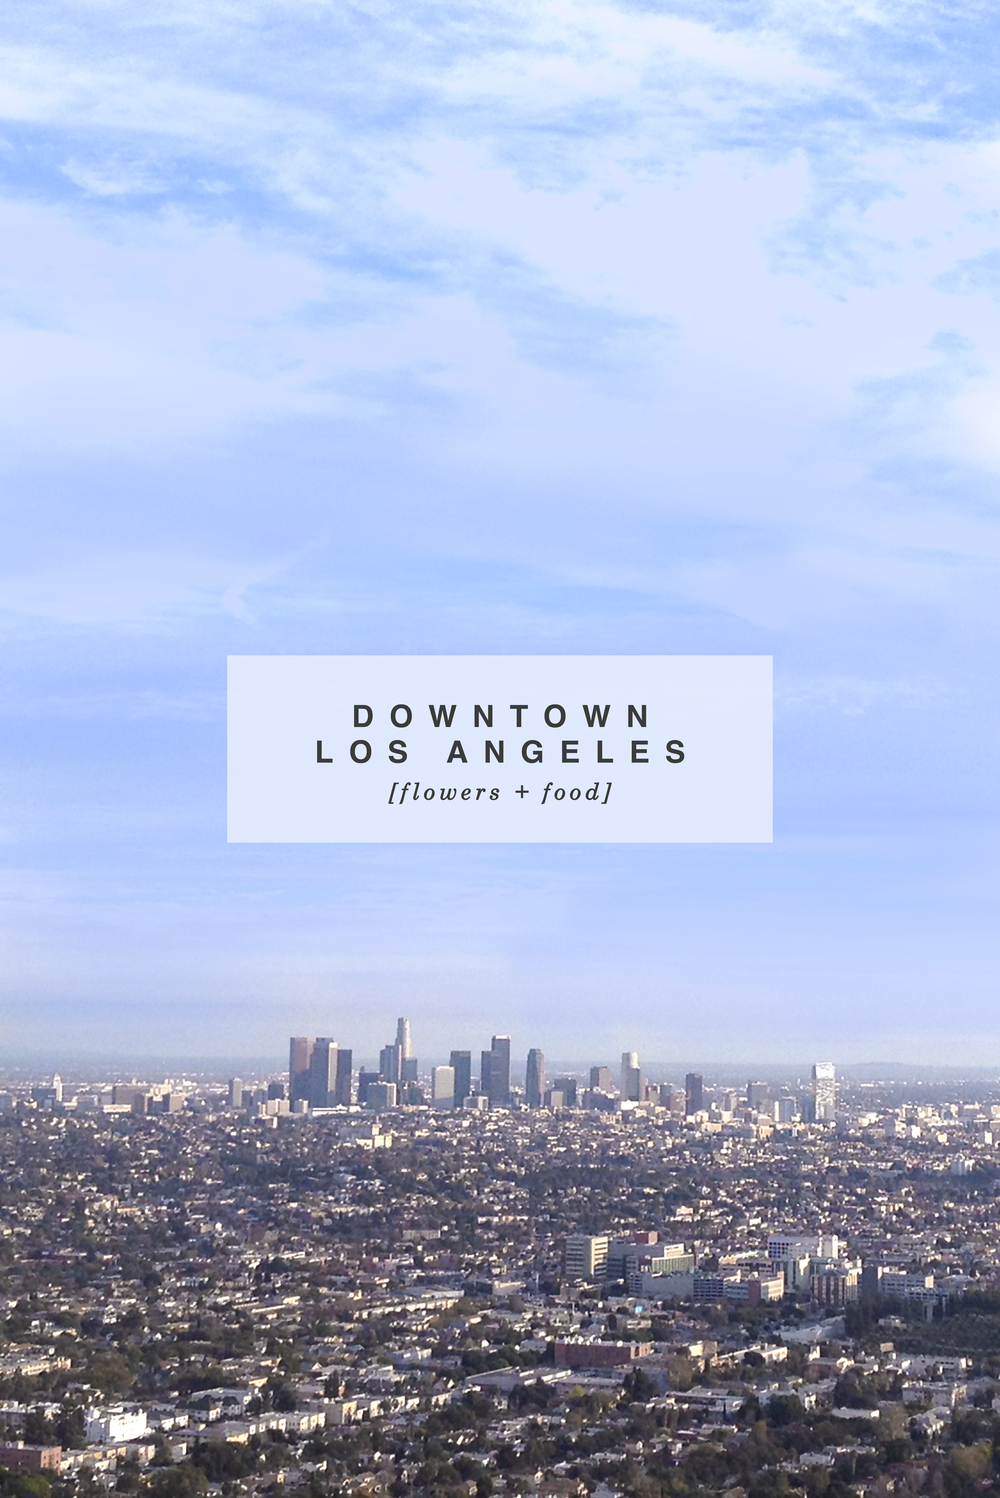 Downtown Los Angeles California Skyline